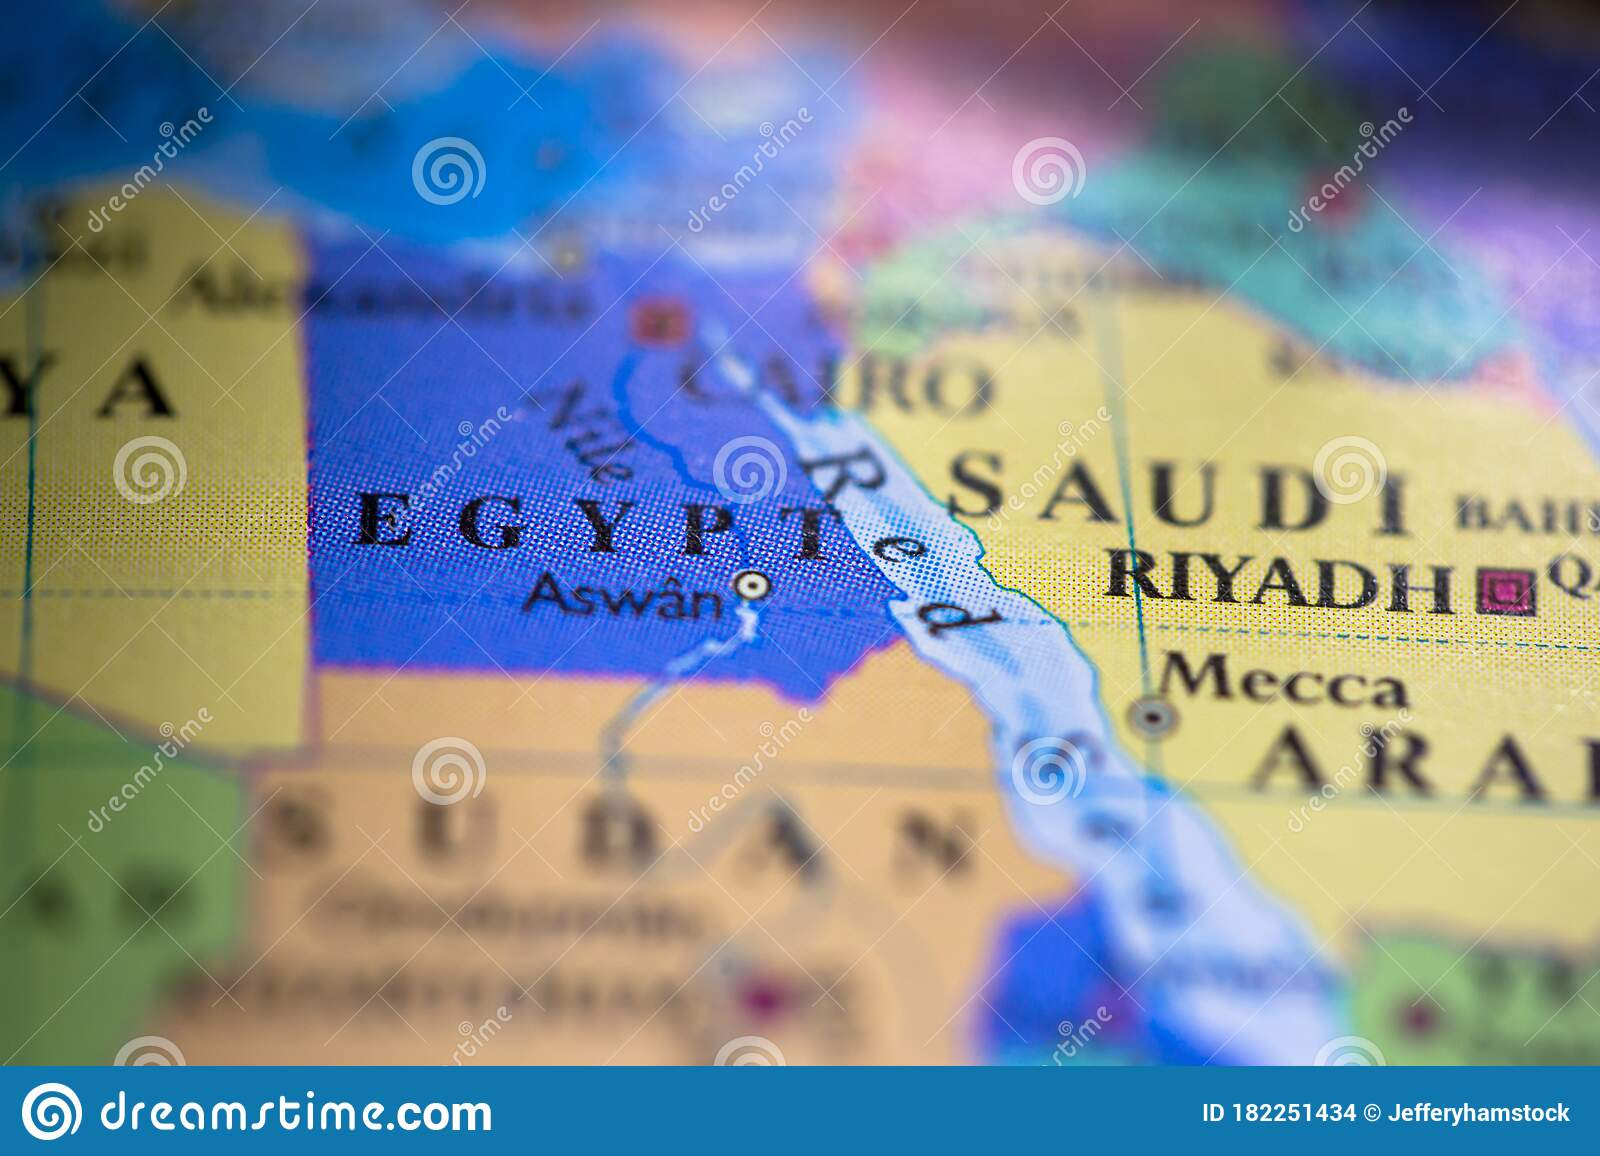 Picture of: Geographical Map Location Of Country Egypt In Africa Continent On Atlas Stock Photo Image Of Compass Deity 182251434